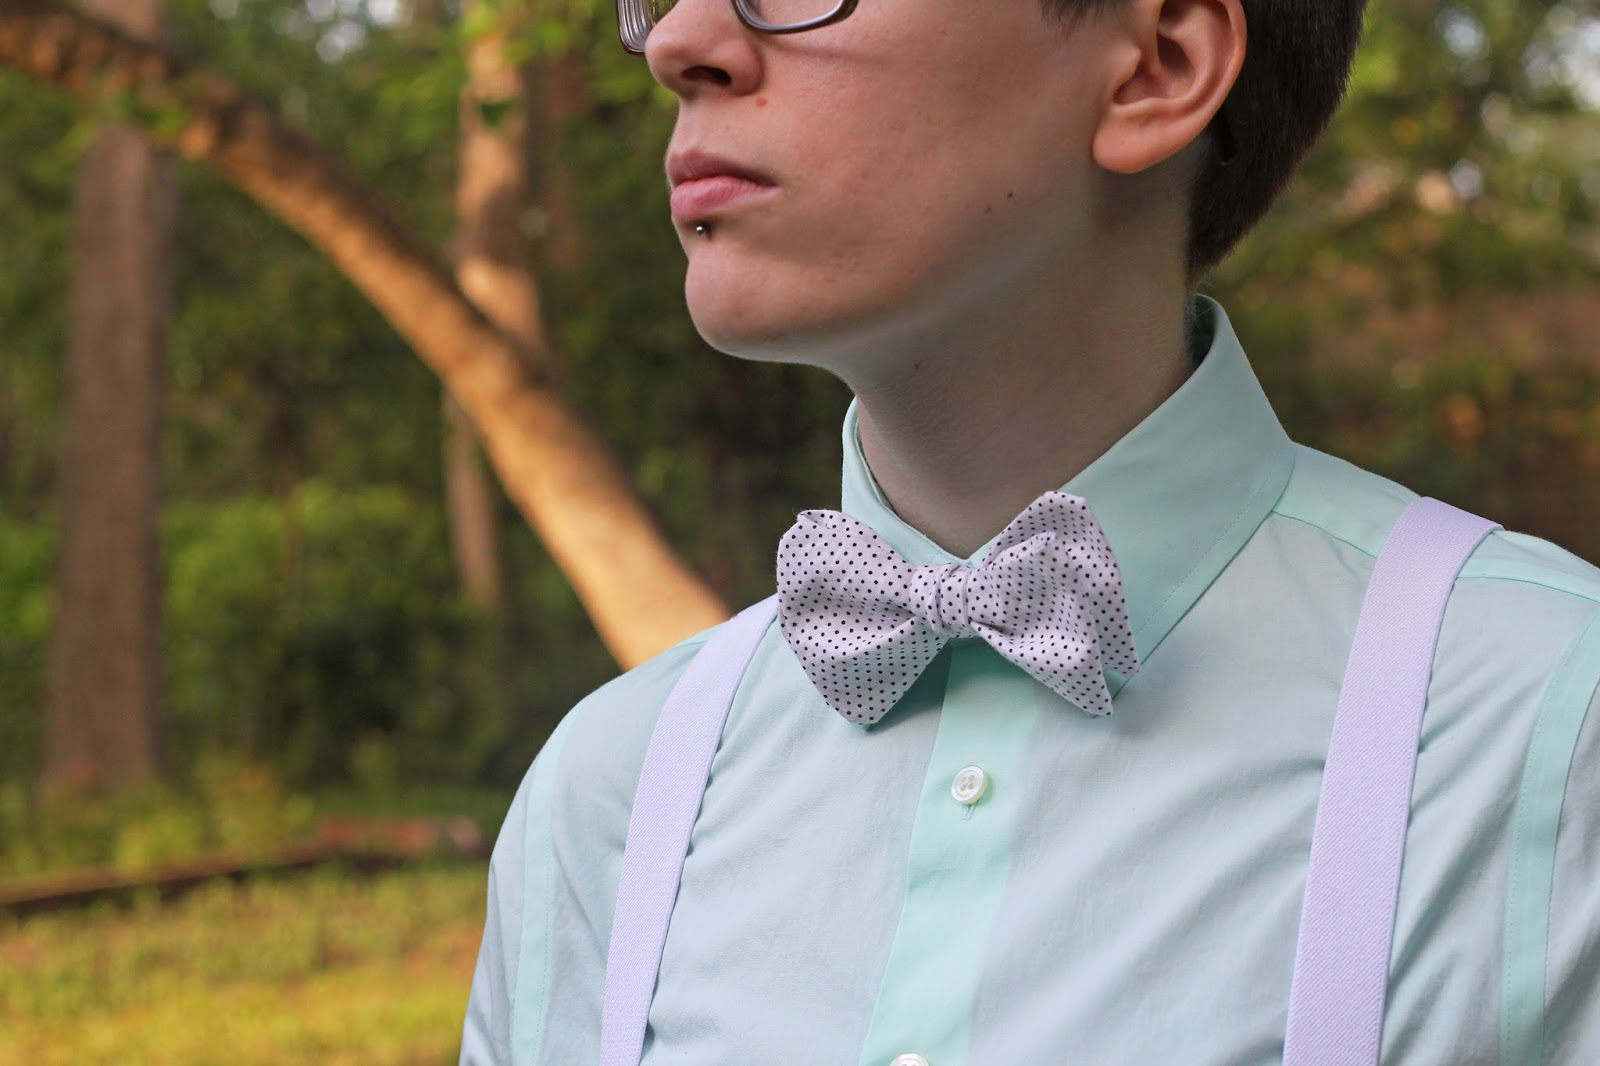 Homemade bow tie (and a free pattern!)